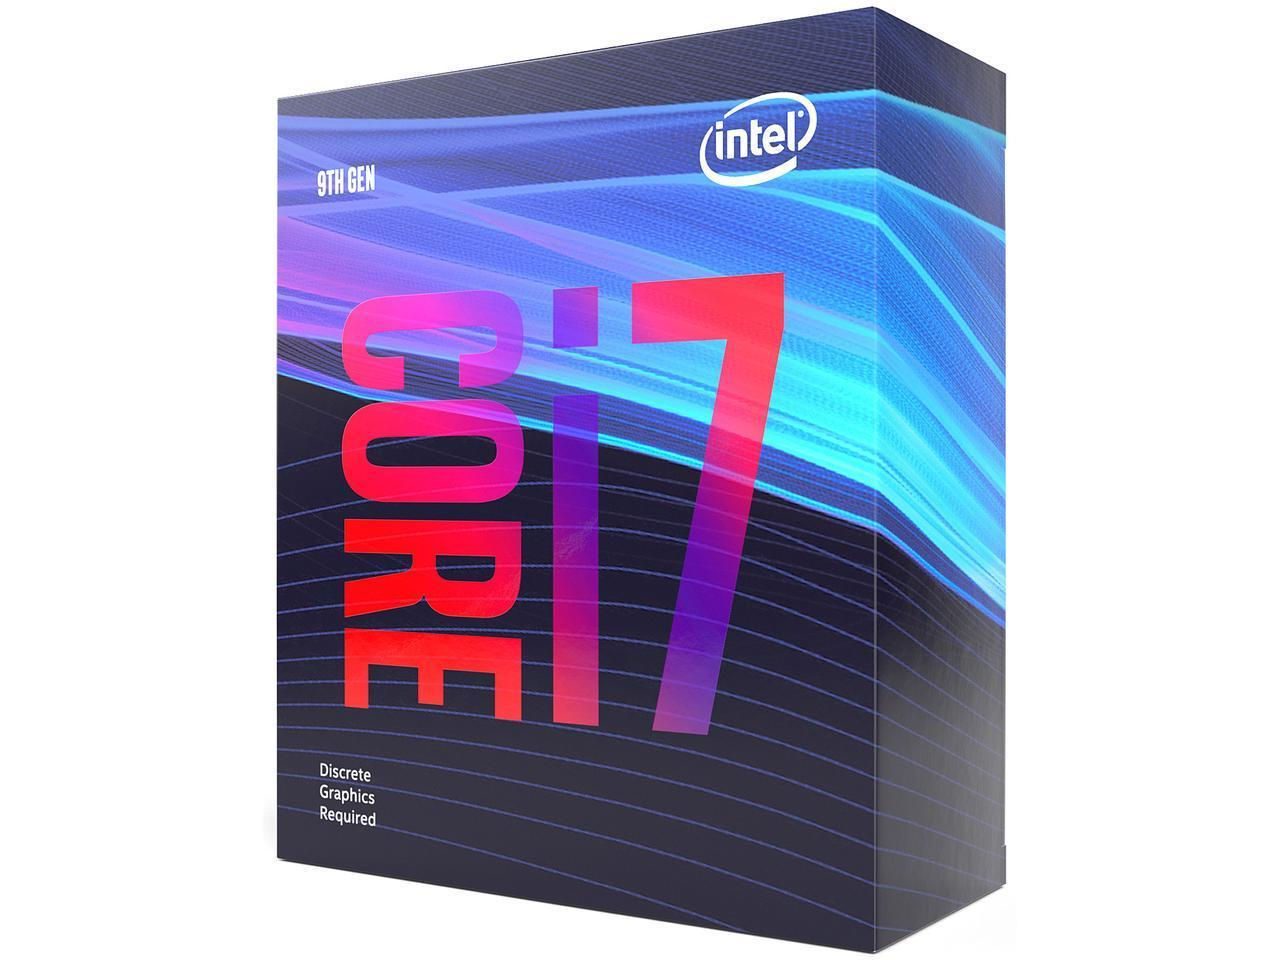 Процесор Intel Coffee Lake Core i7-9700F 3.00GHz (up to 4.70GHz), 12MB, 65W,  LGA1151 (300 Series)-3